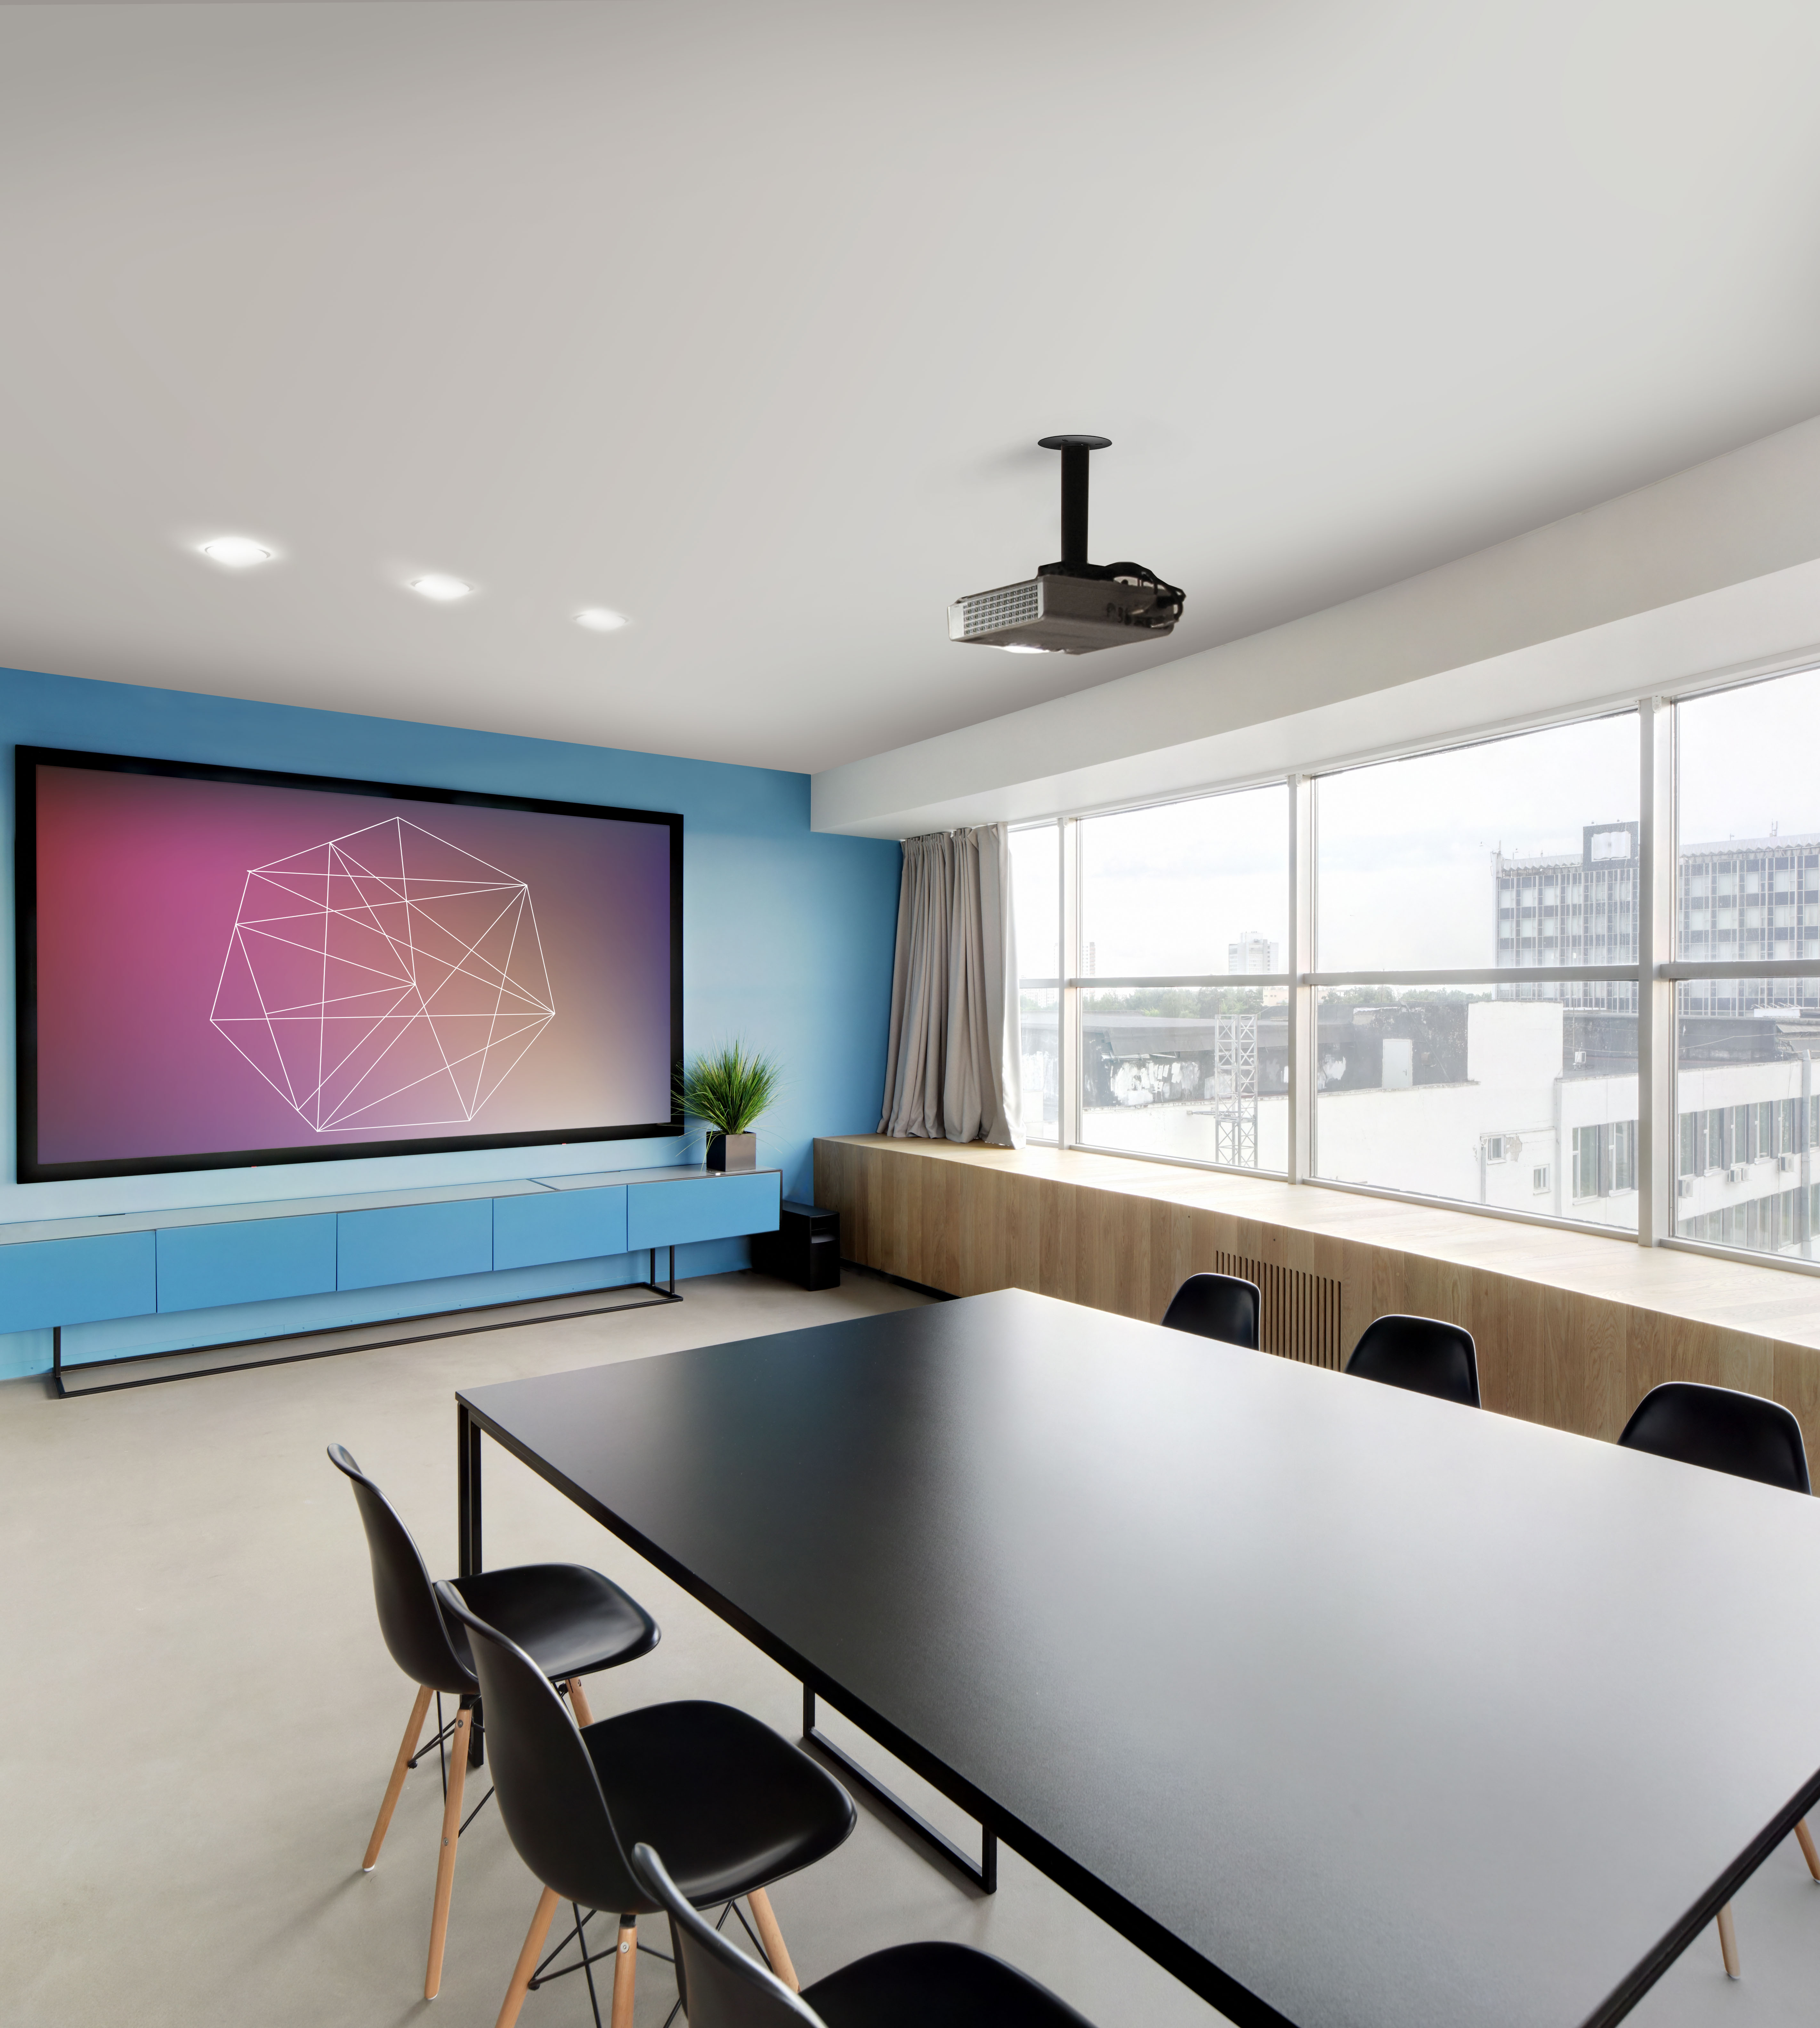 Projector_conference room